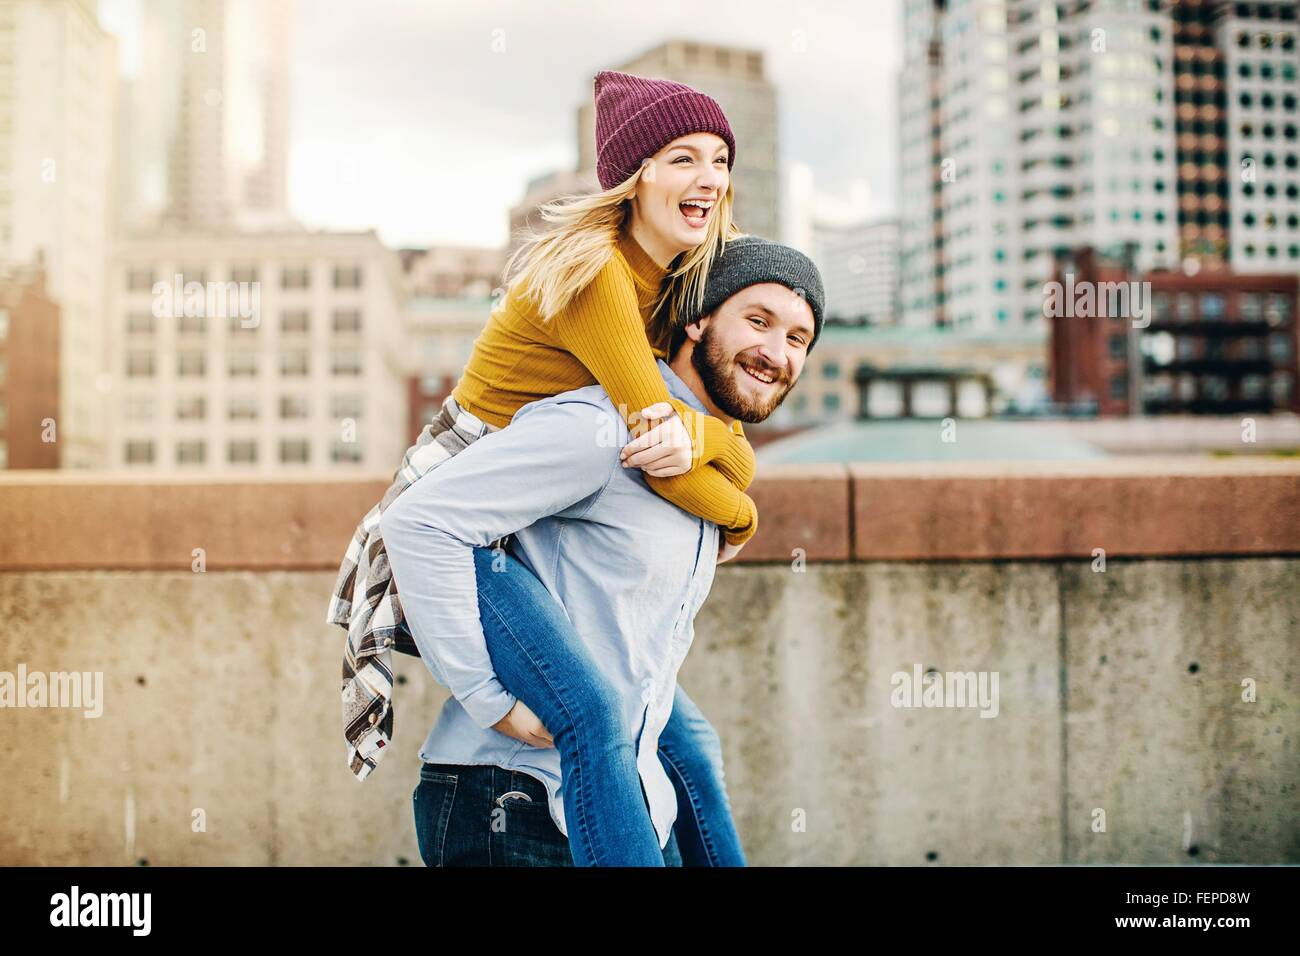 Young man giving girlfriend a piggyback on city rooftop terrace - Stock Image